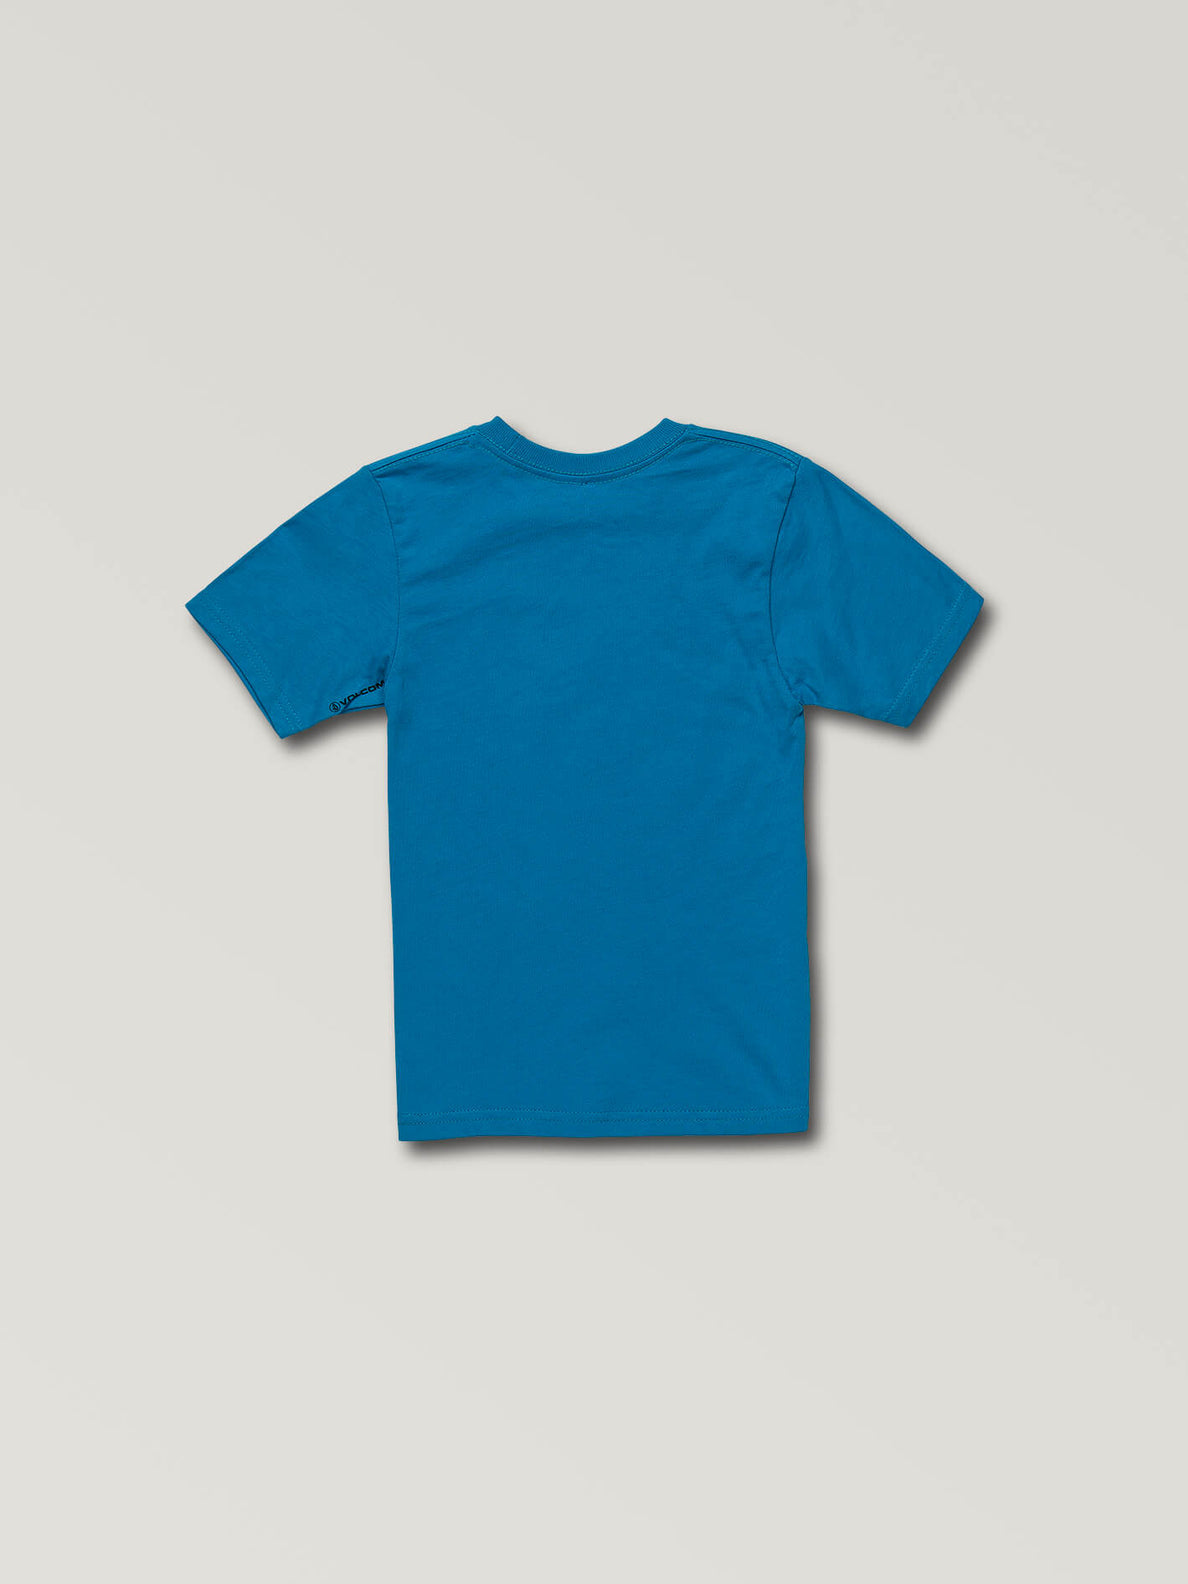 Little Boys Stone Sounds Short Sleeve Tee In Bright Blue, Back View